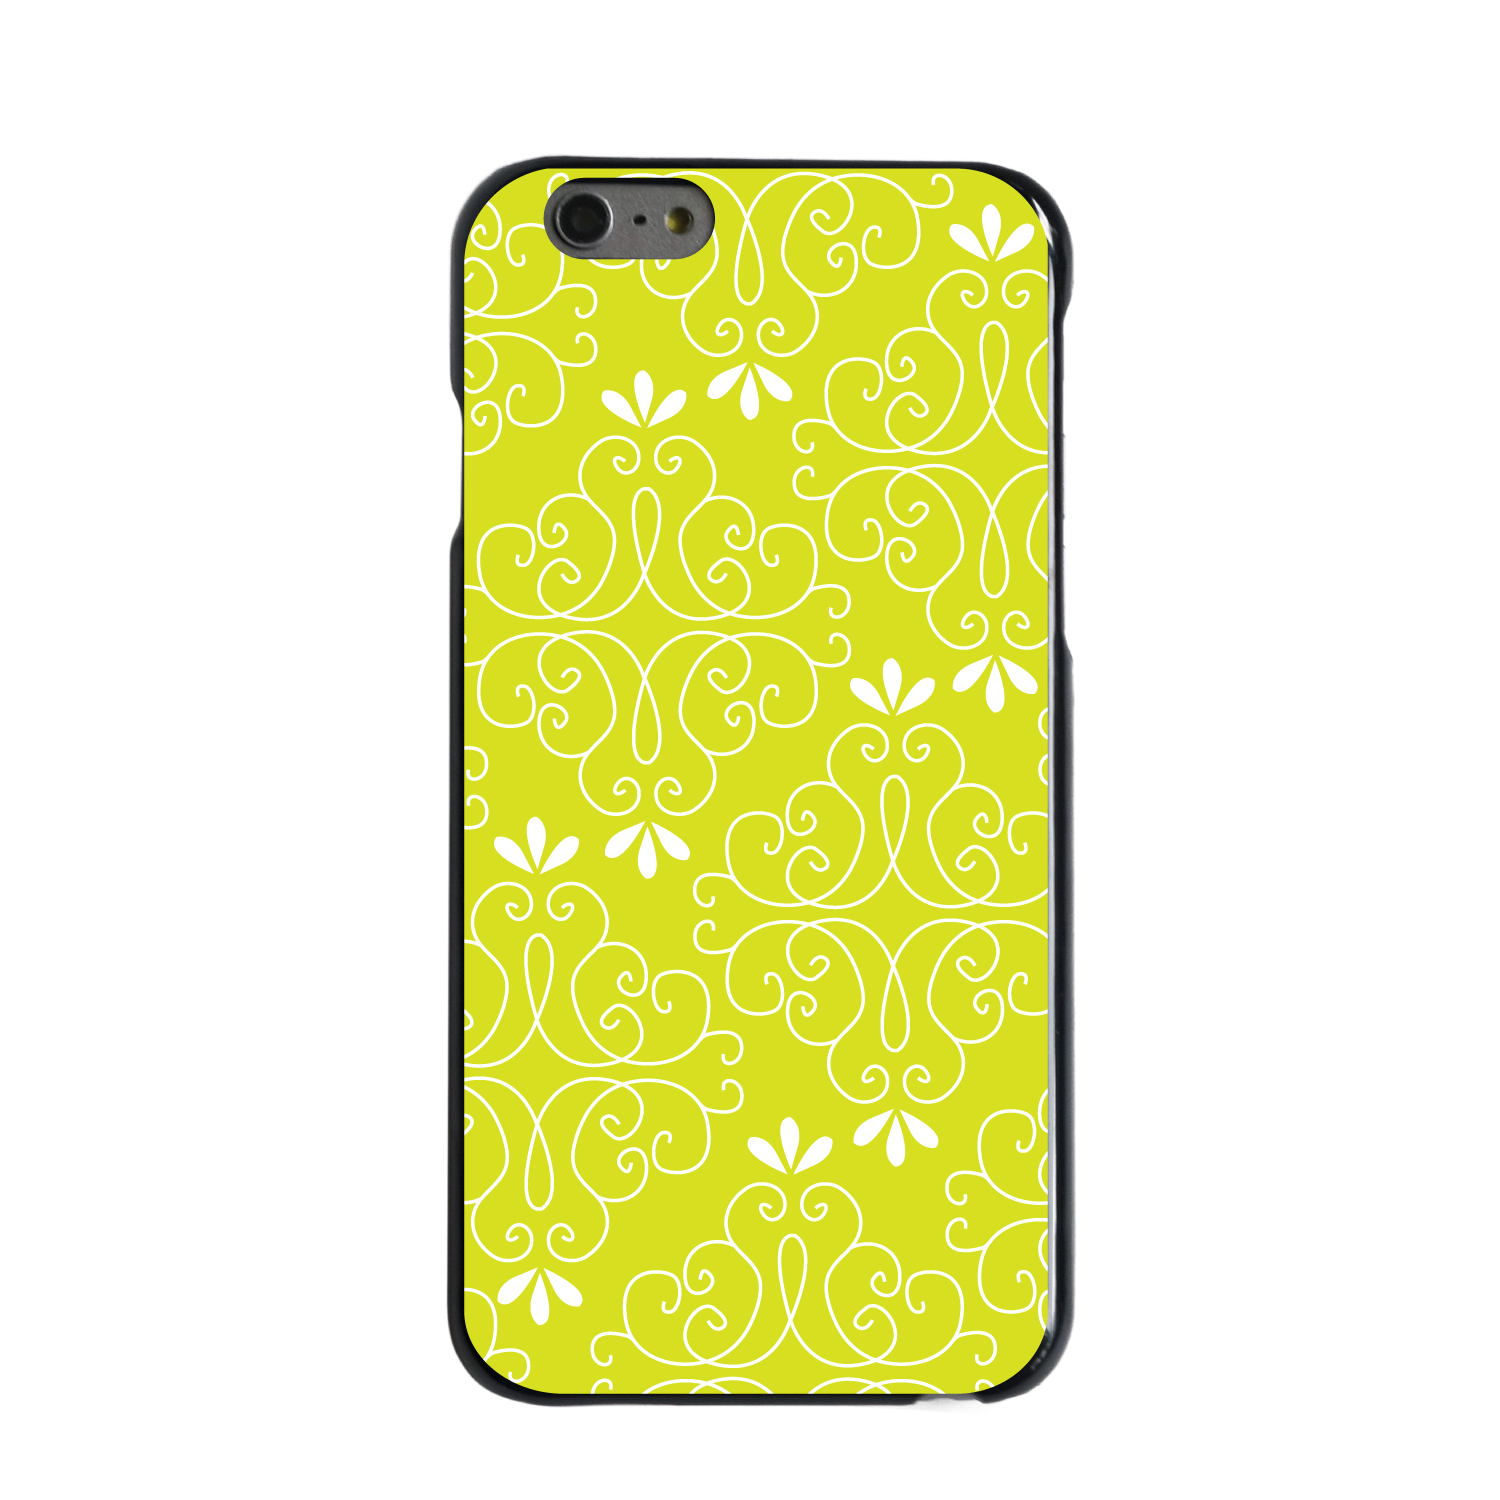 """CUSTOM Black Hard Plastic Snap-On Case for Apple iPhone 6 PLUS / 6S PLUS (5.5"""" Screen) - Yellow White Floral"""